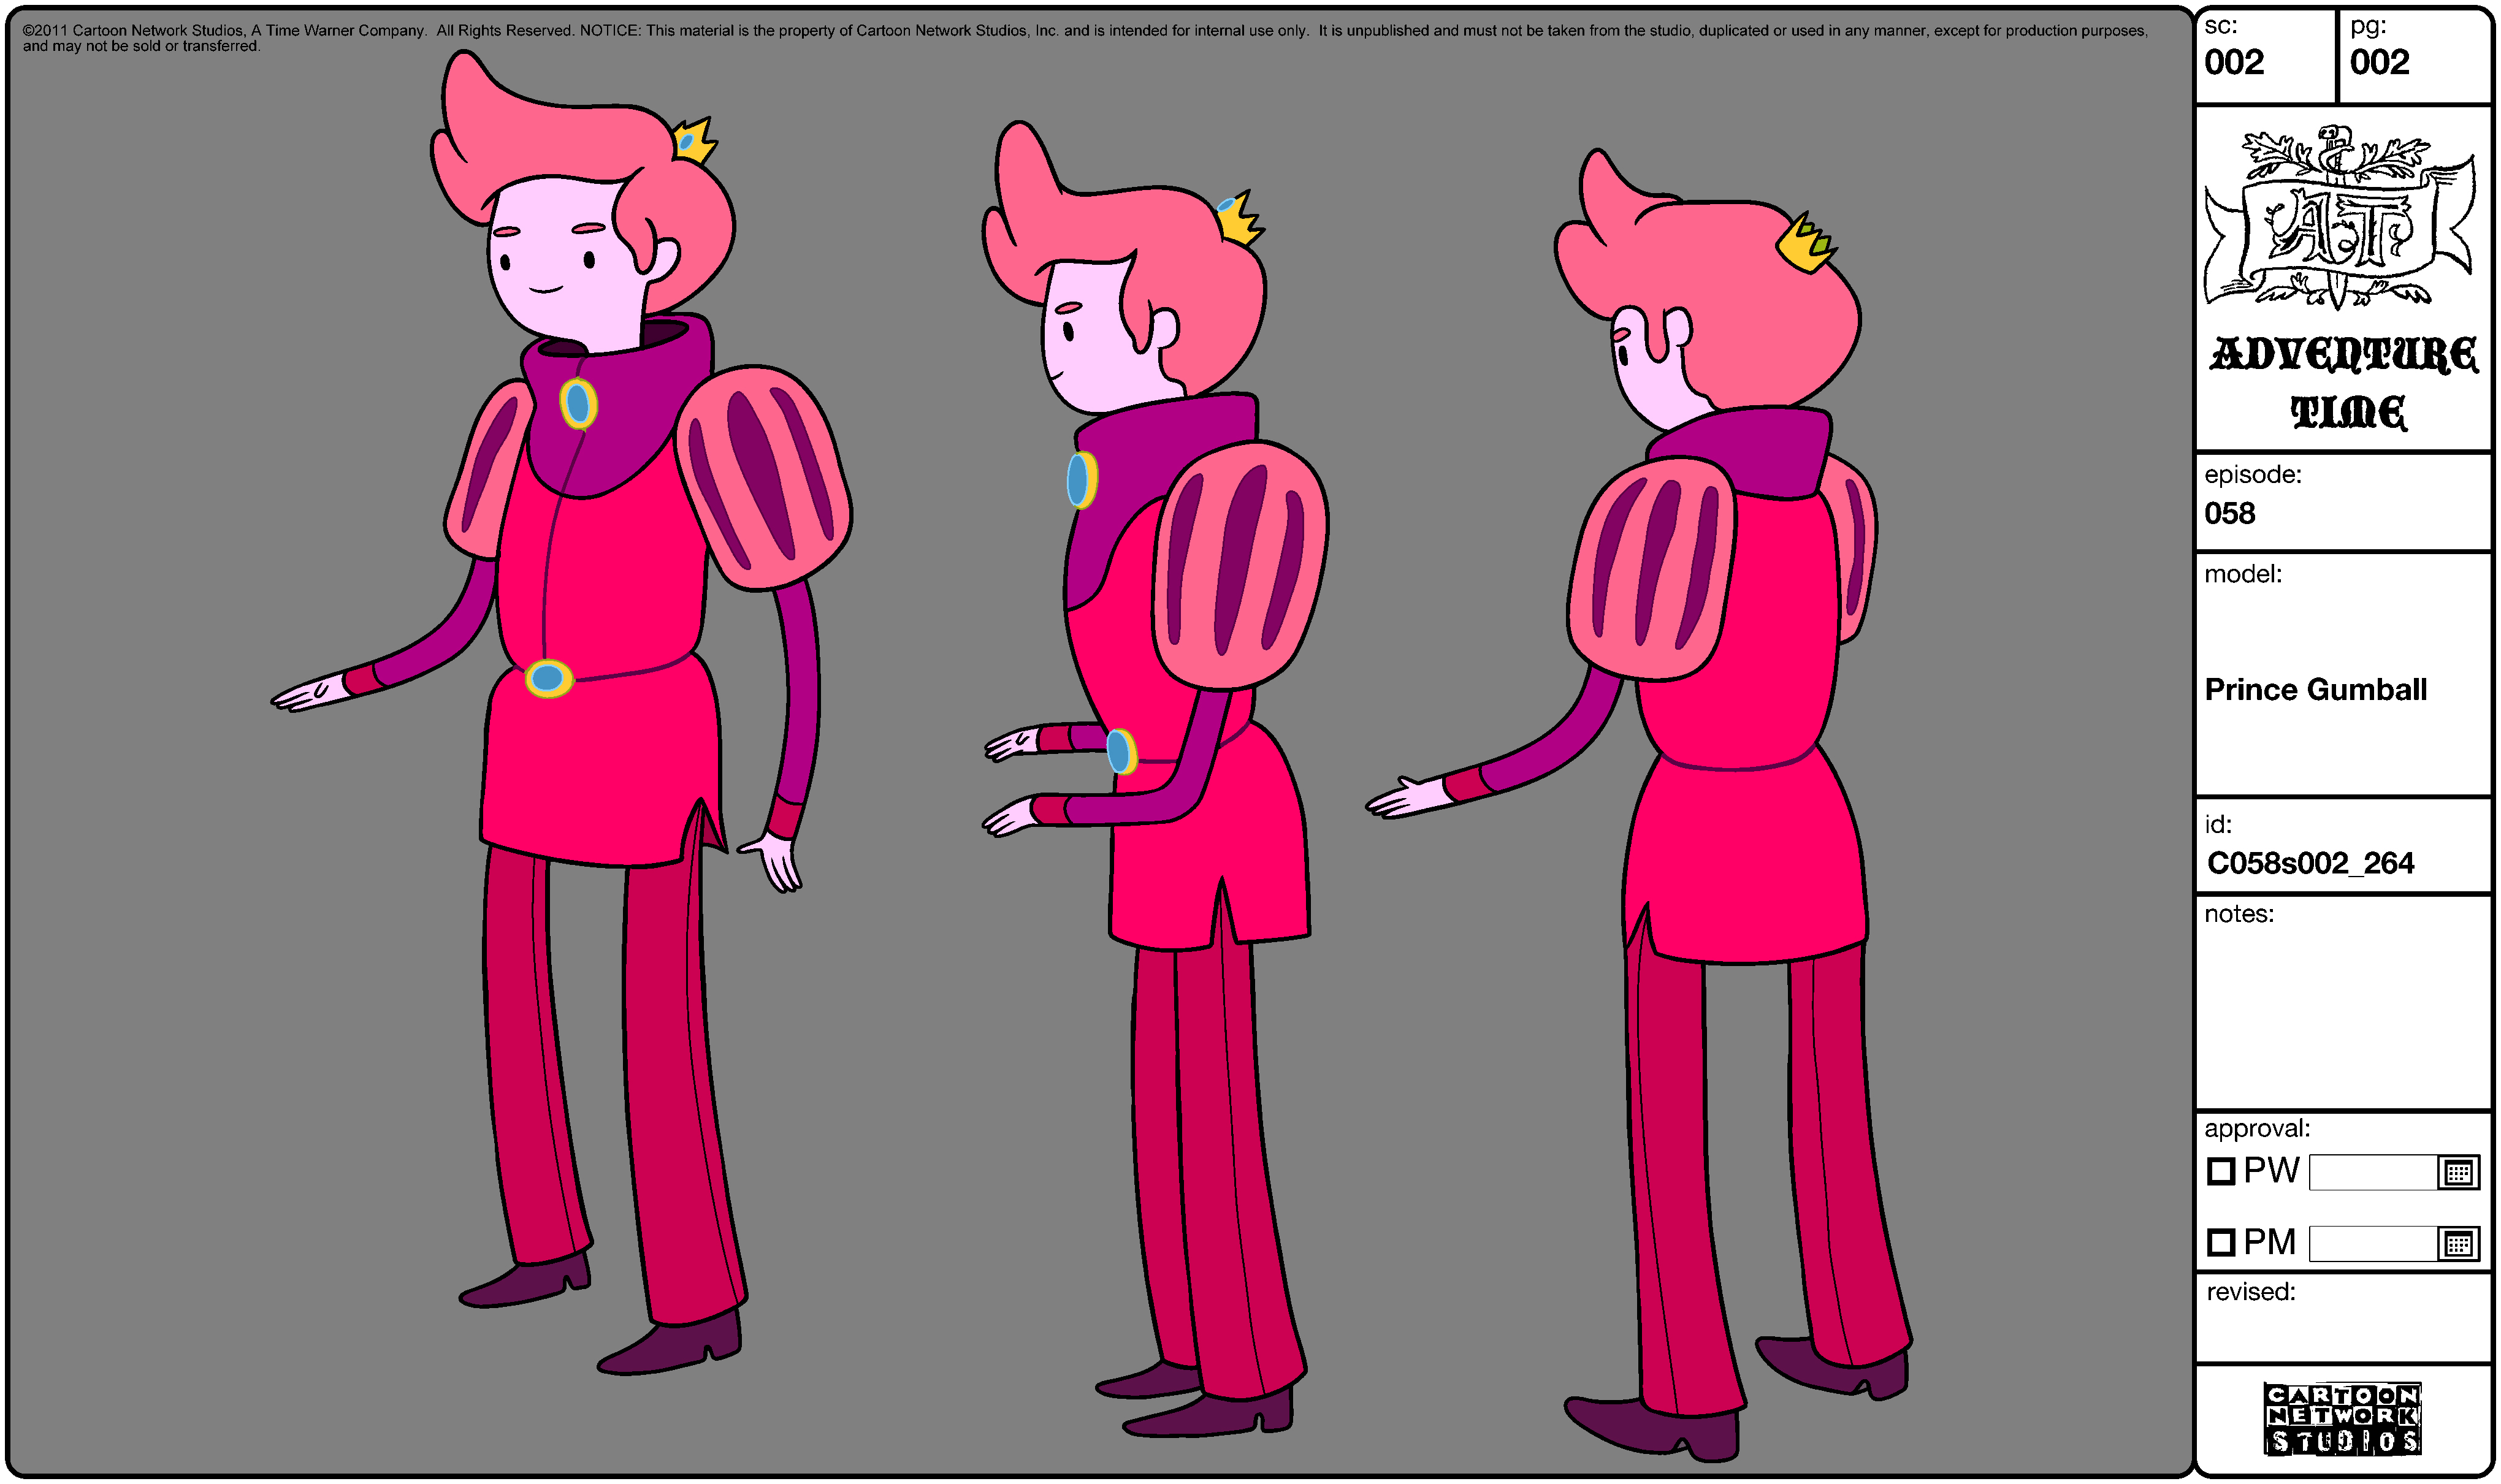 Adventure Time Character Design Sheets : Prince gumball concept art and character